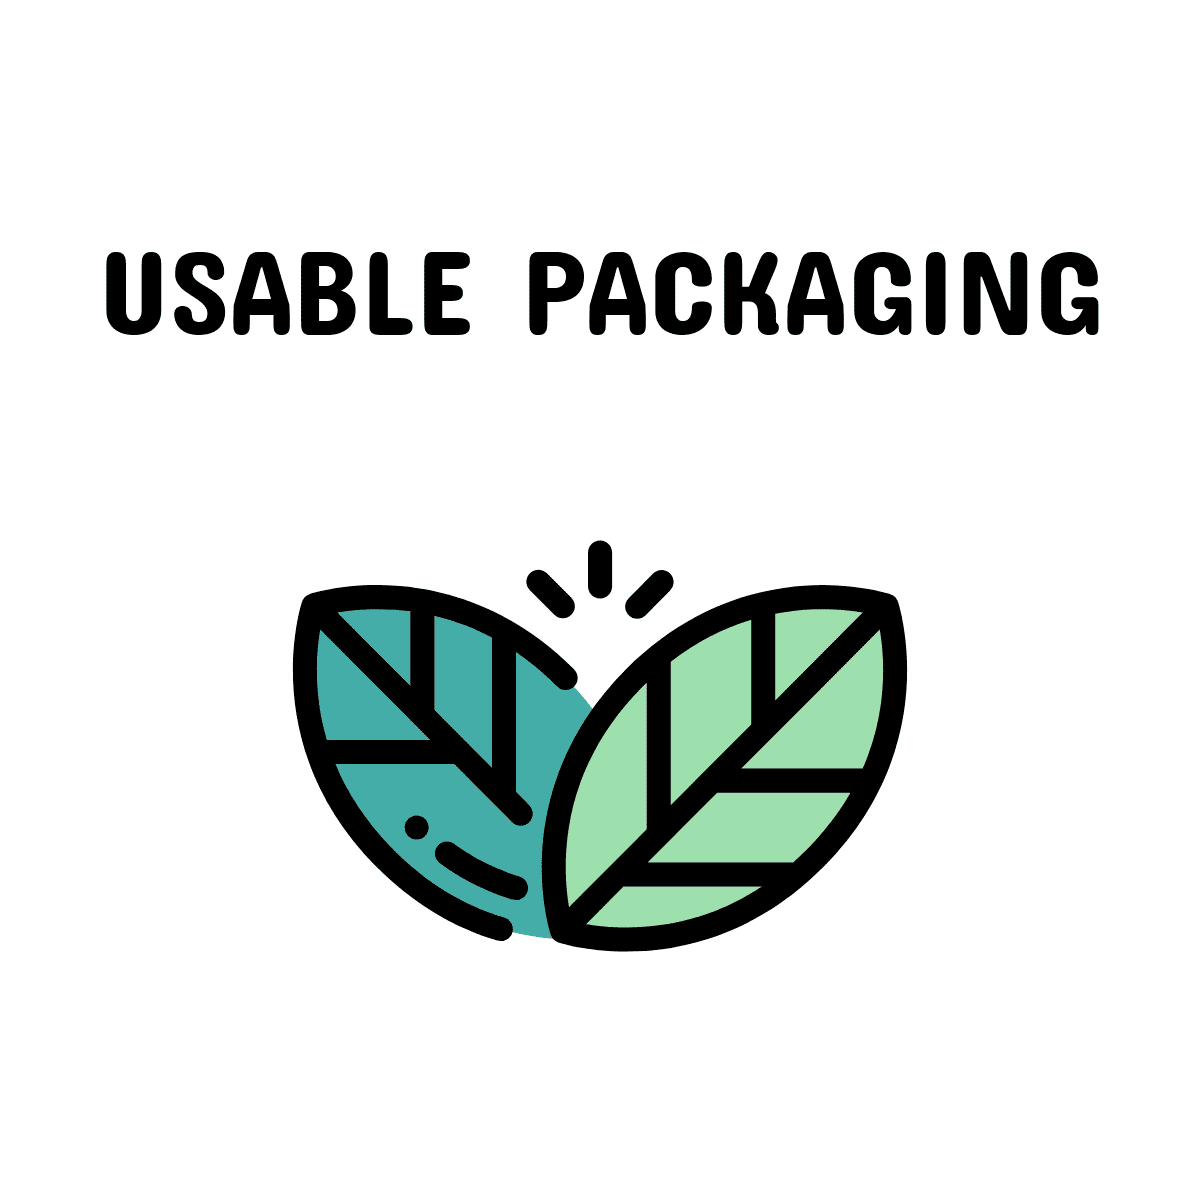 USABLE PACKAGING